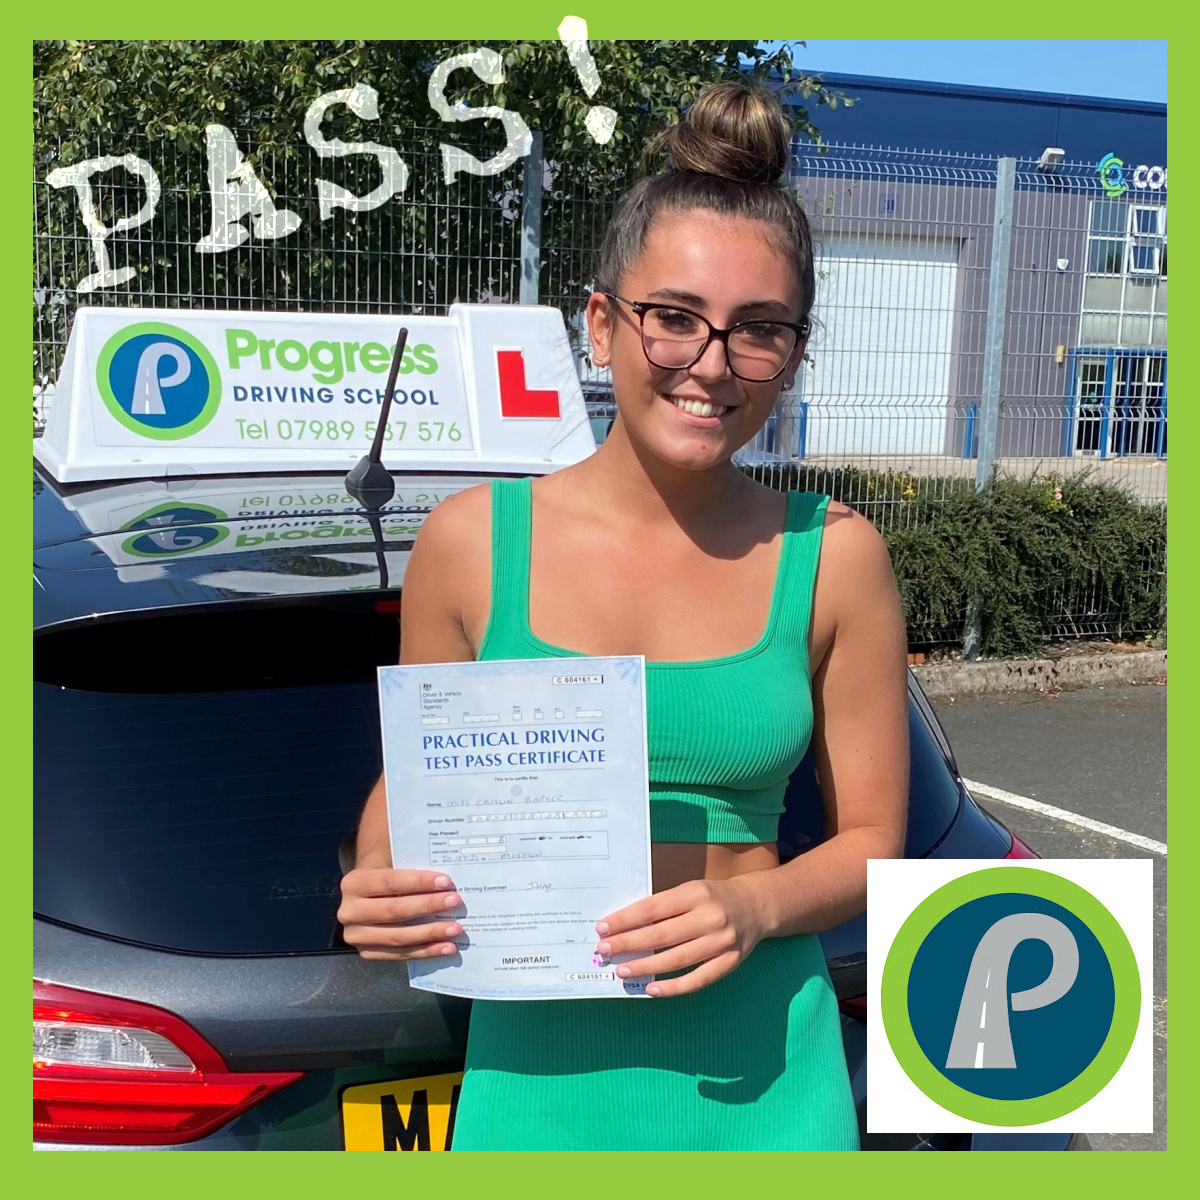 Caitlin passed with Progress Driving School